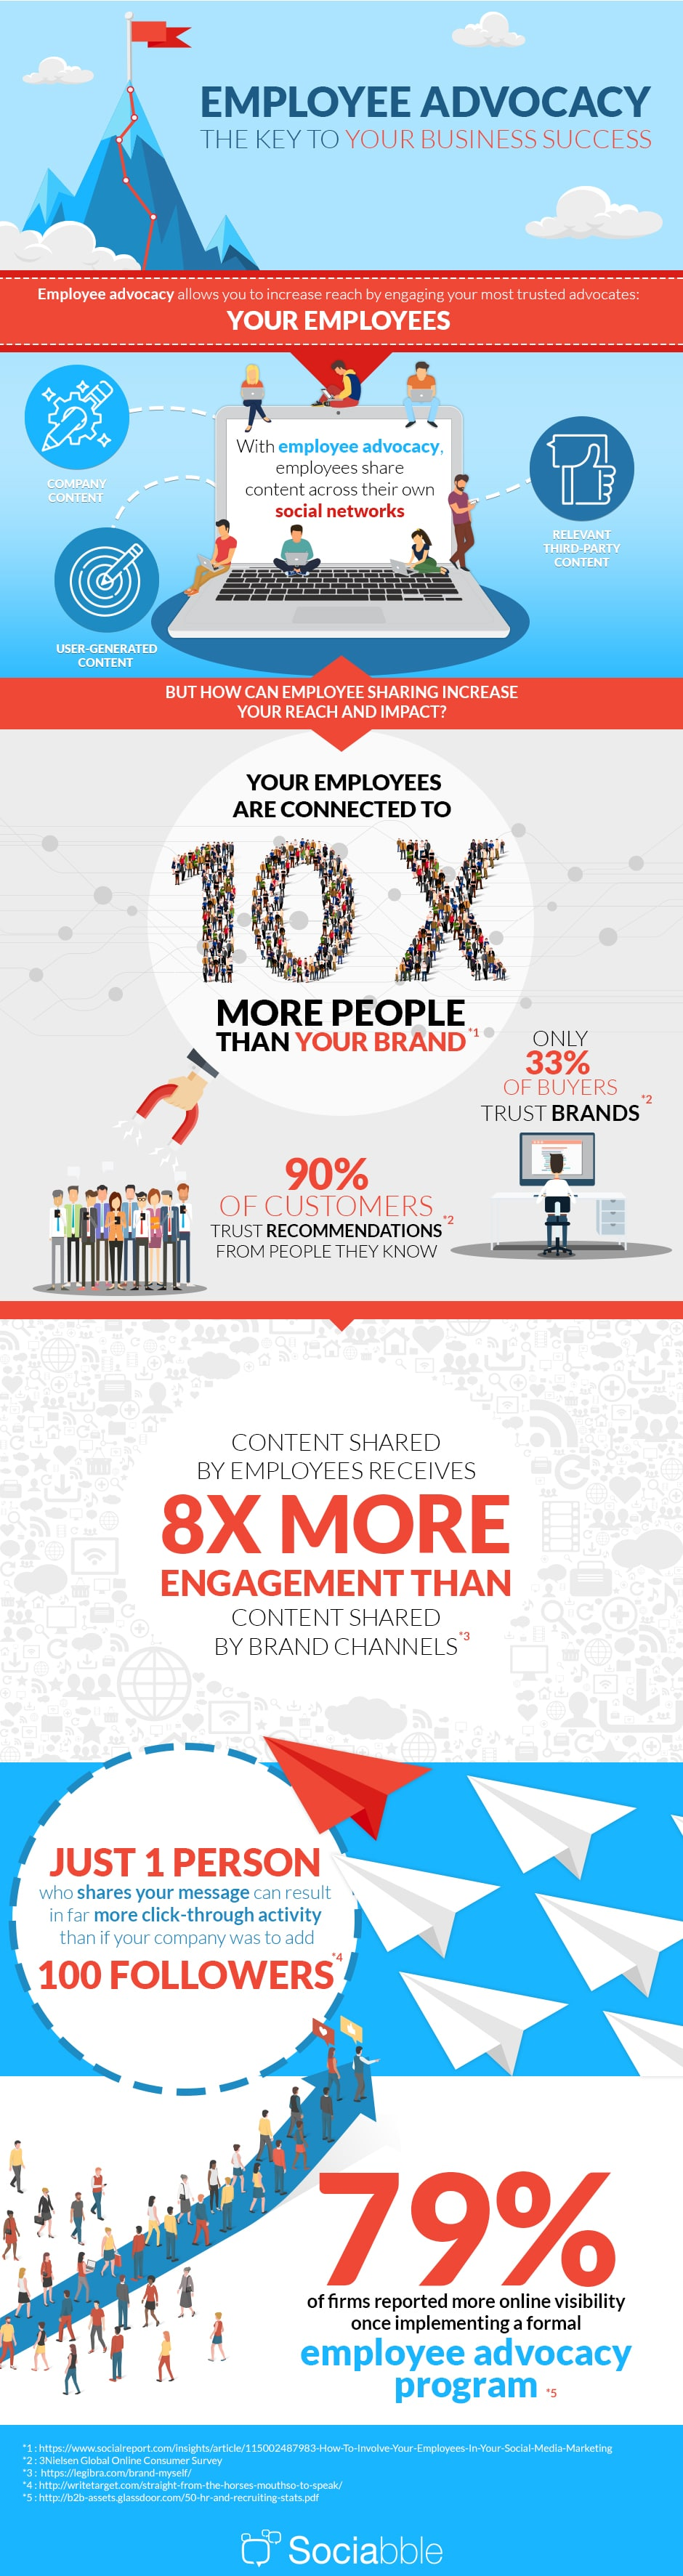 Infographic Employee Advocacy The Key to your Business Success